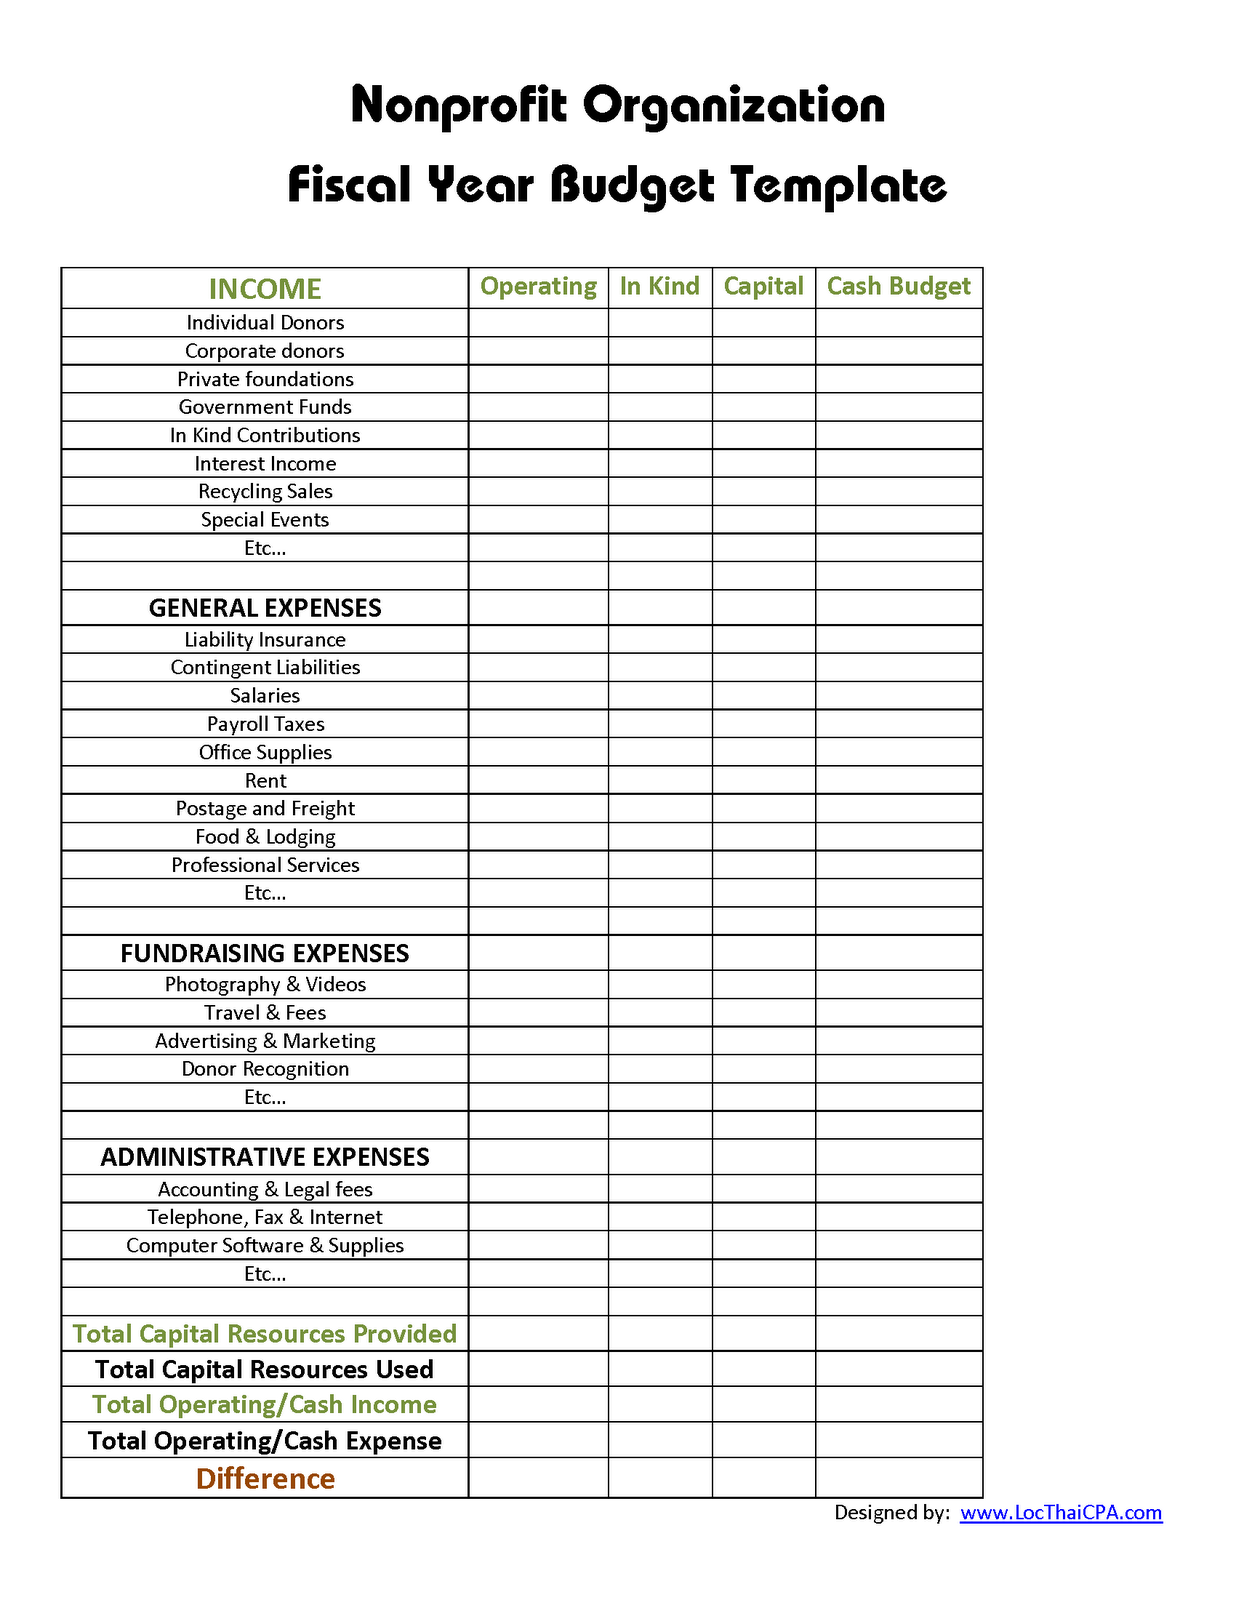 LOC THAI CPA, PC: Nonprofit Organization Fiscal Year Budget Template